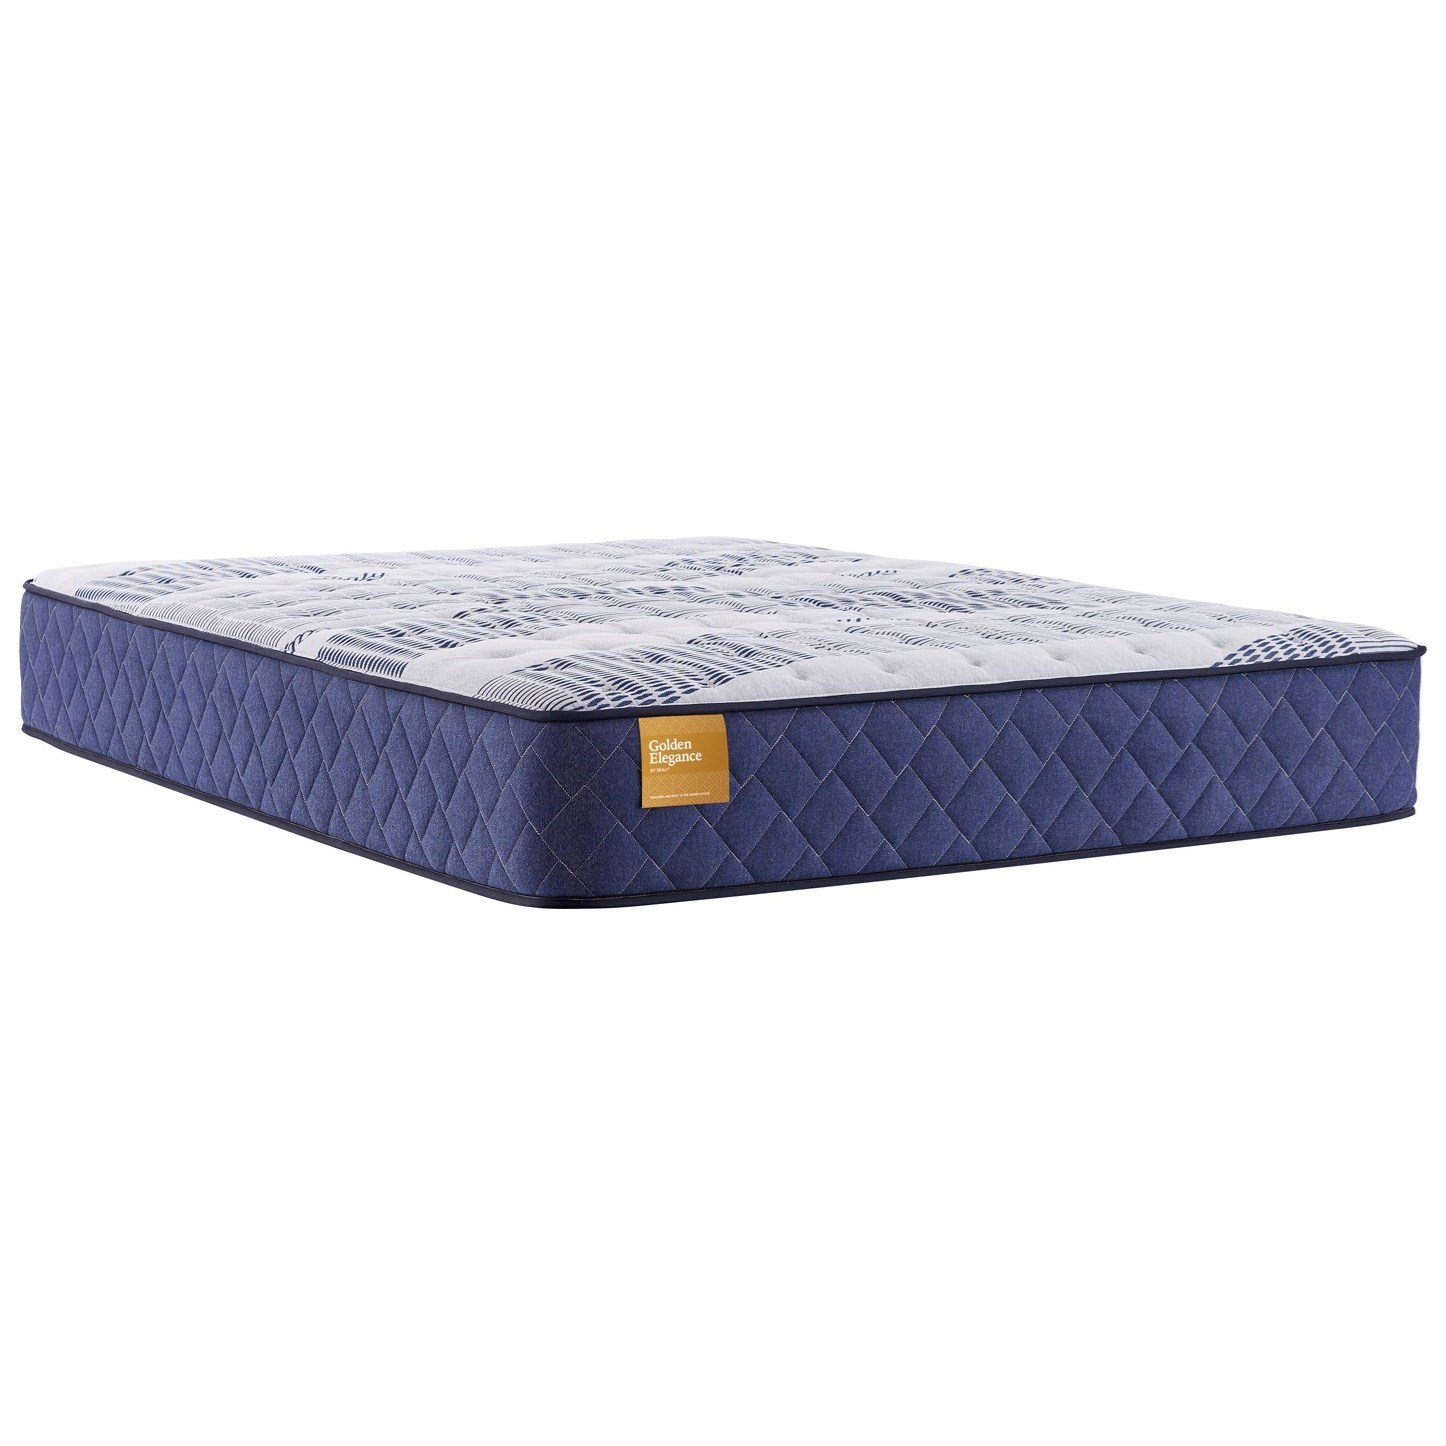 """B3 Cushion Firm TT Twin 12 1/2"""" Cushion Firm Adjustable Set by Sealy at Novello Home Furnishings"""